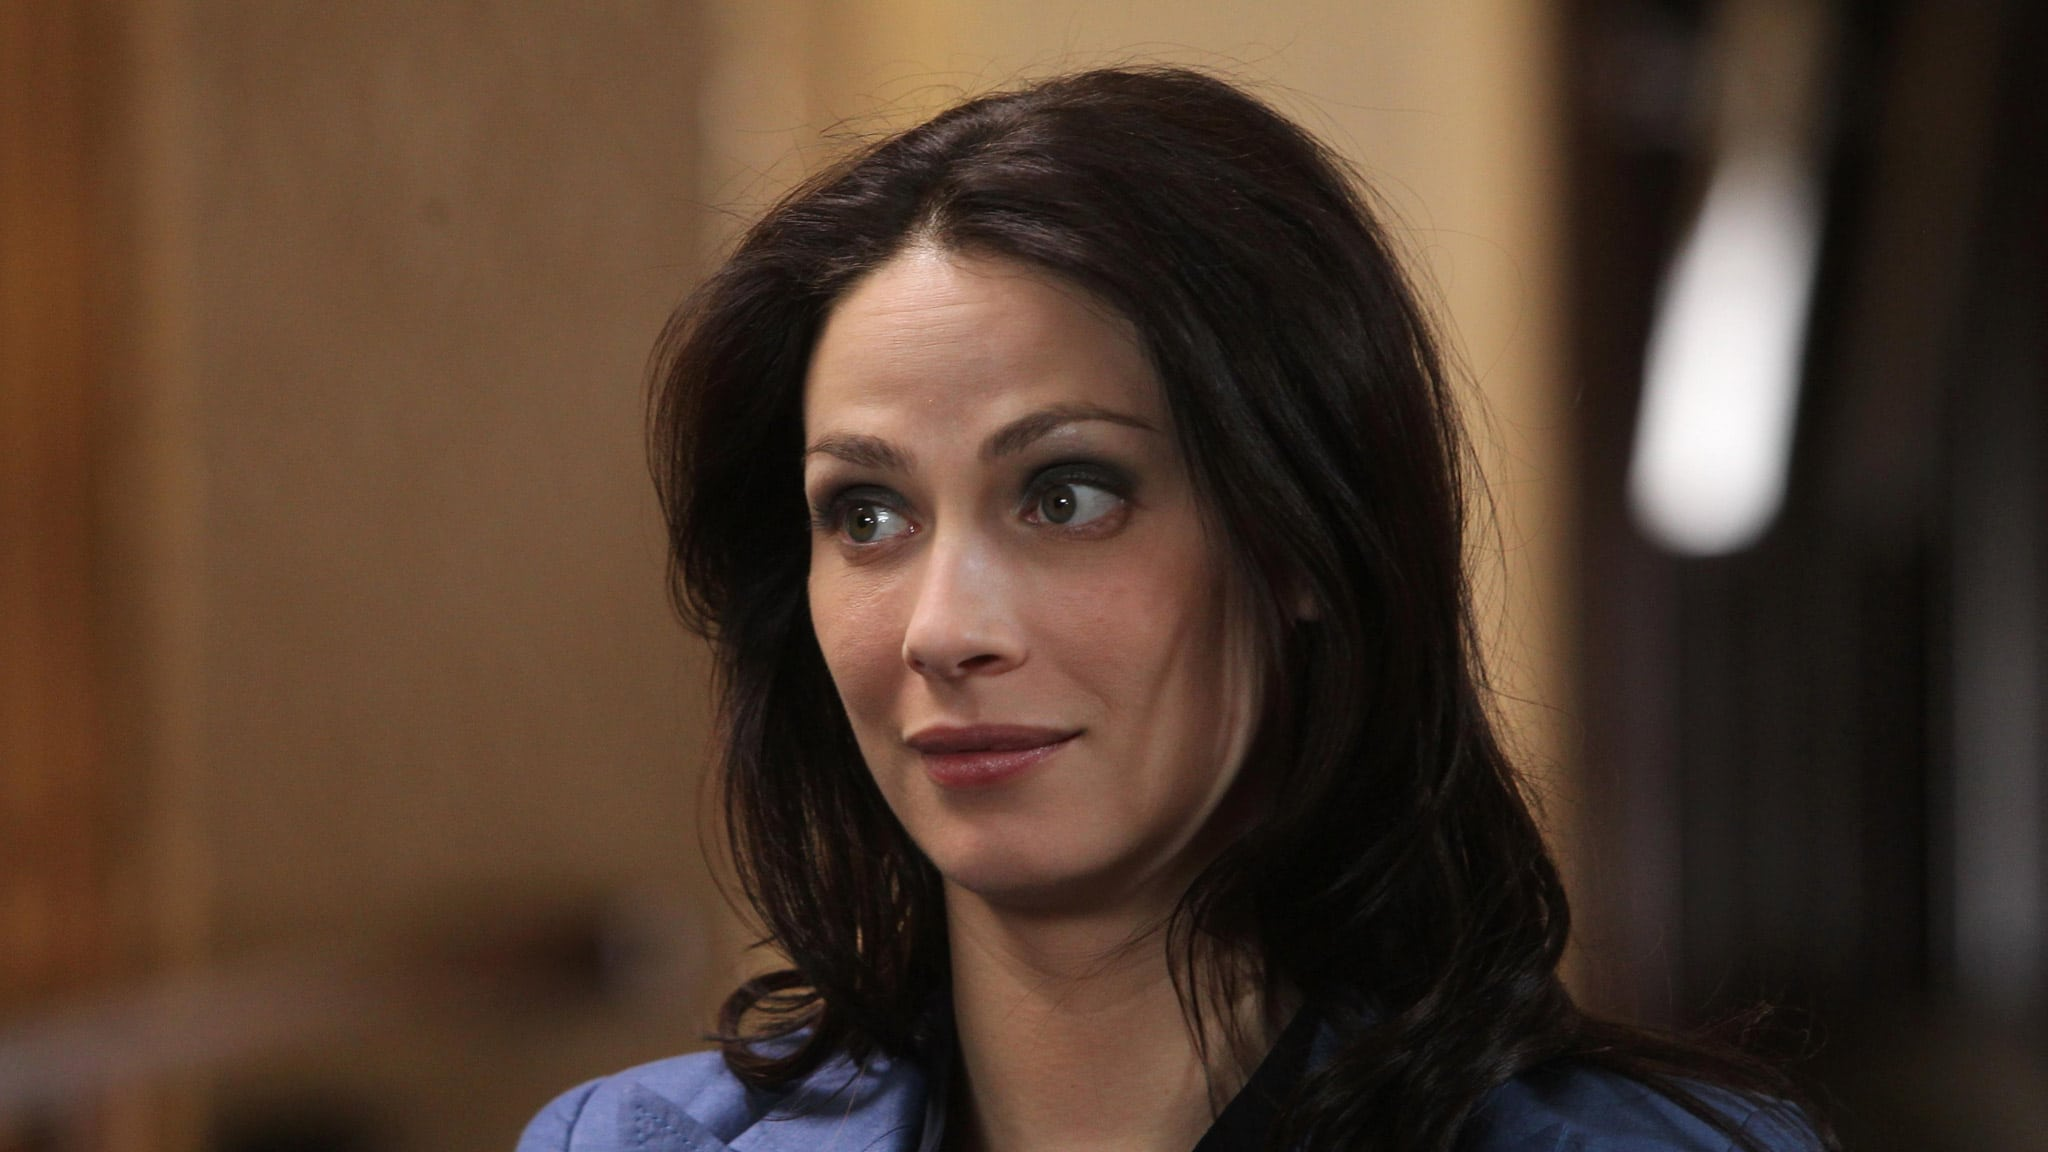 Kelly Warehouse Is Joanne Kelly Married To Someone Bio Warehouse 13